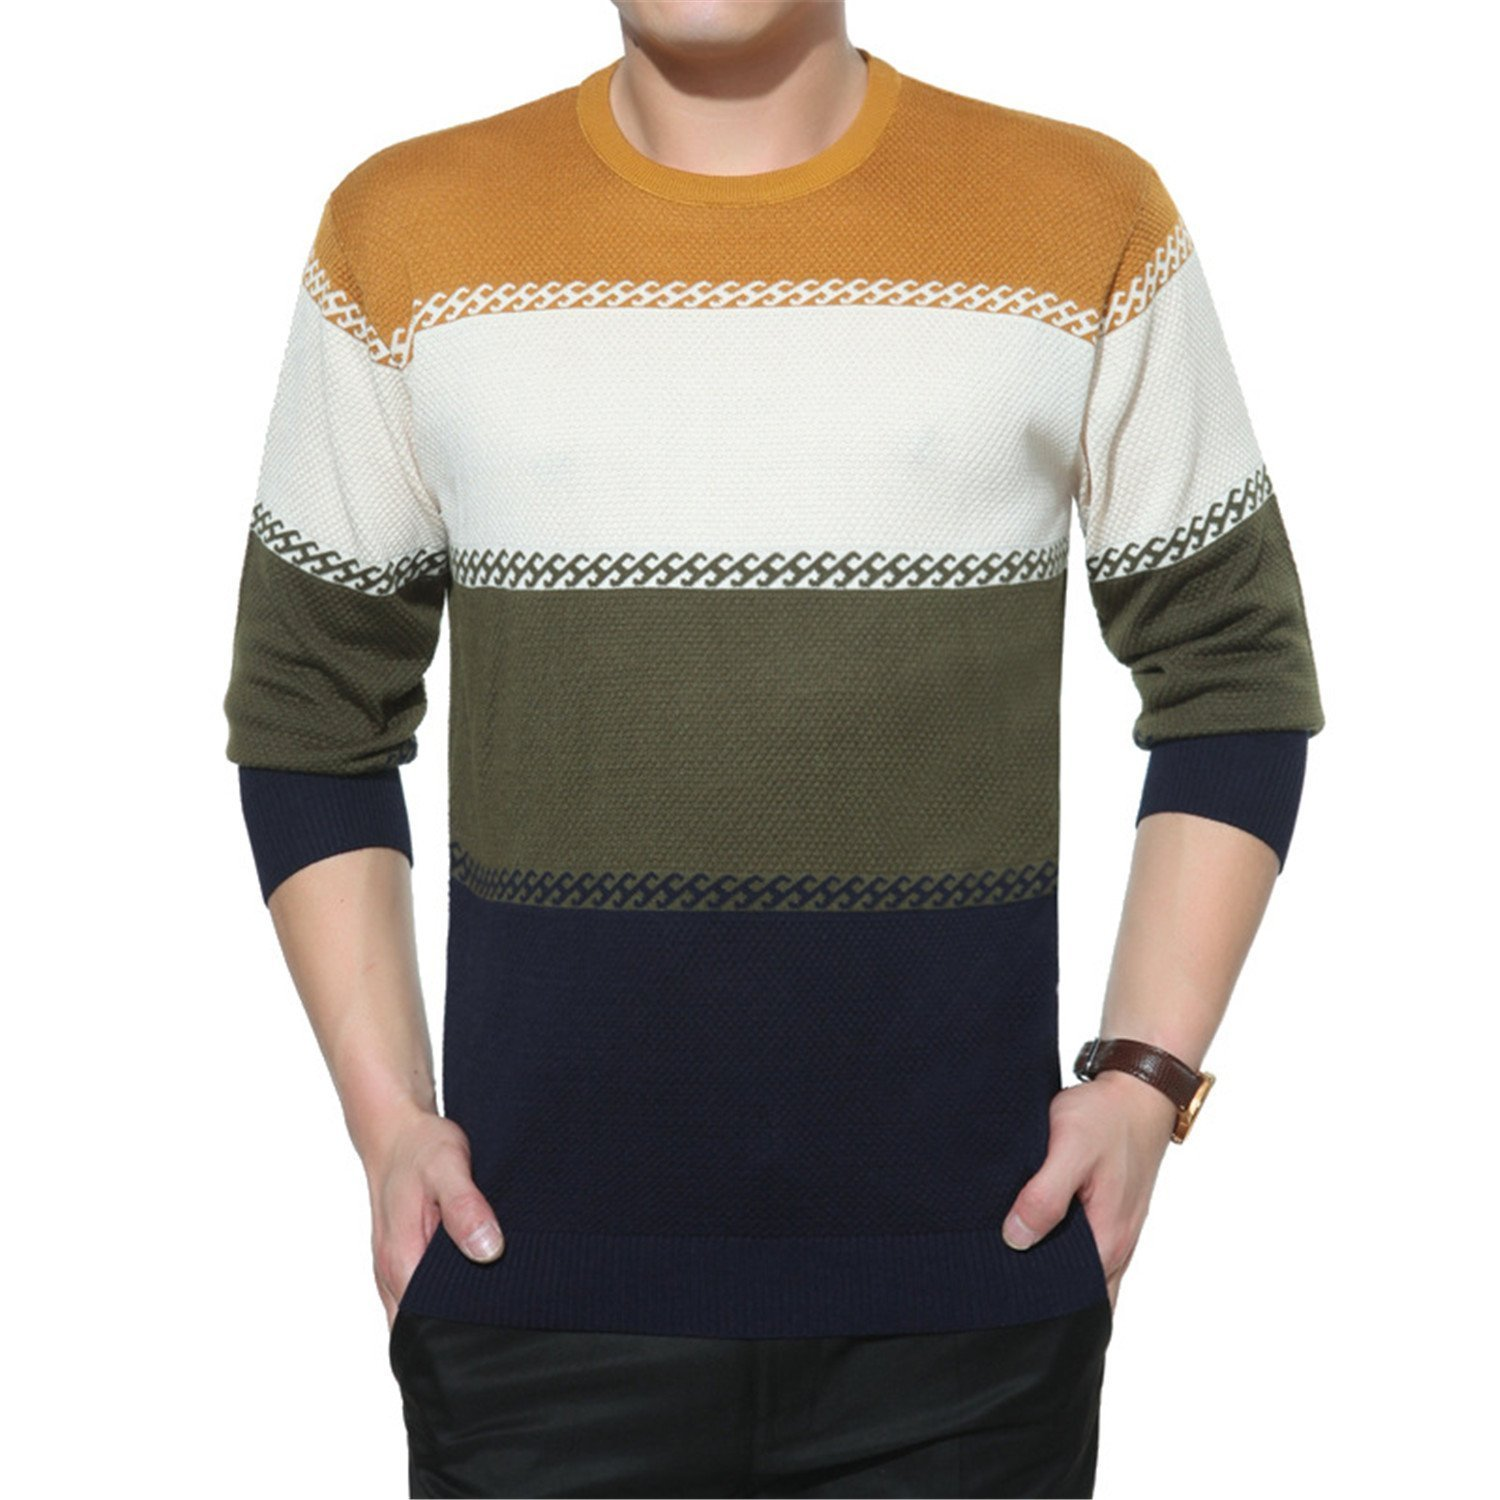 LOKOUO Handsome and Silm Sweater Men Nice Spring Mens Sweaters O Neck  Casual Long-sleeved Sweater Men Slim Fit Cotton Patchwork Pullovers Knitted  Sweater ca6fa6ac0